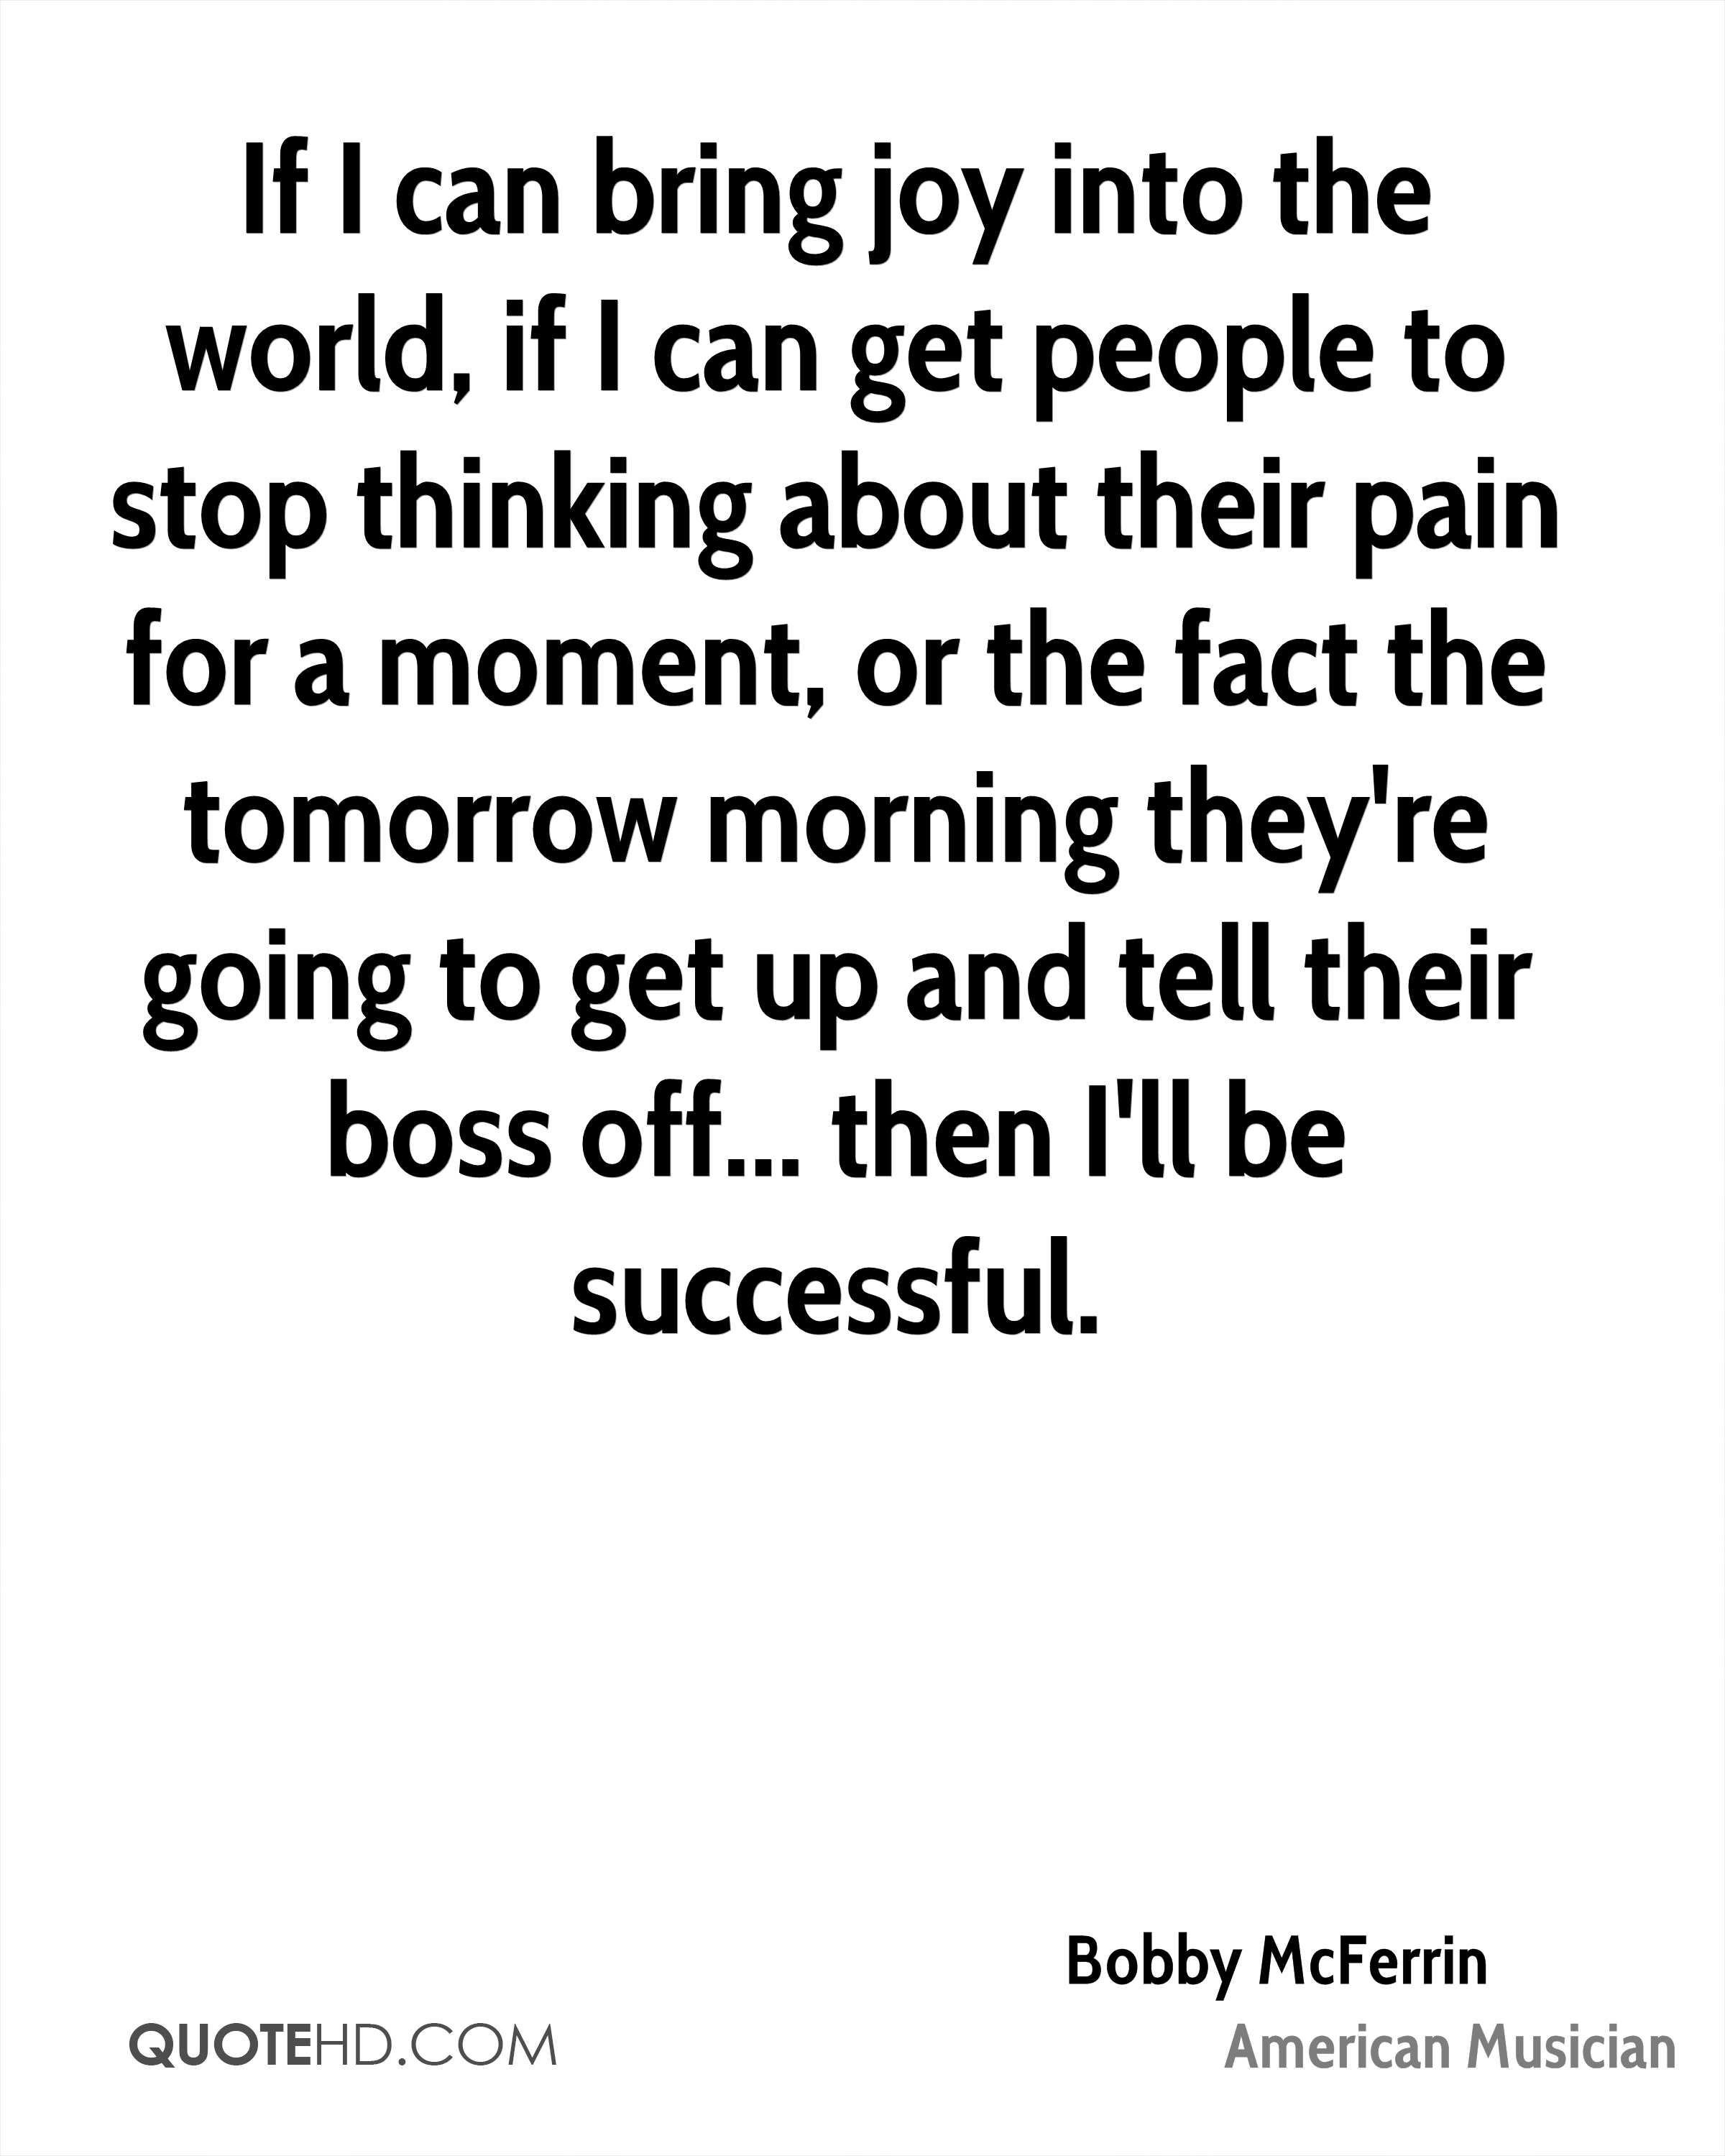 If I can bring joy into the world, if I can get people to stop thinking about their pain for a moment, or the fact the tomorrow morning they're going to get up and tell their boss off... then I'll be successful.